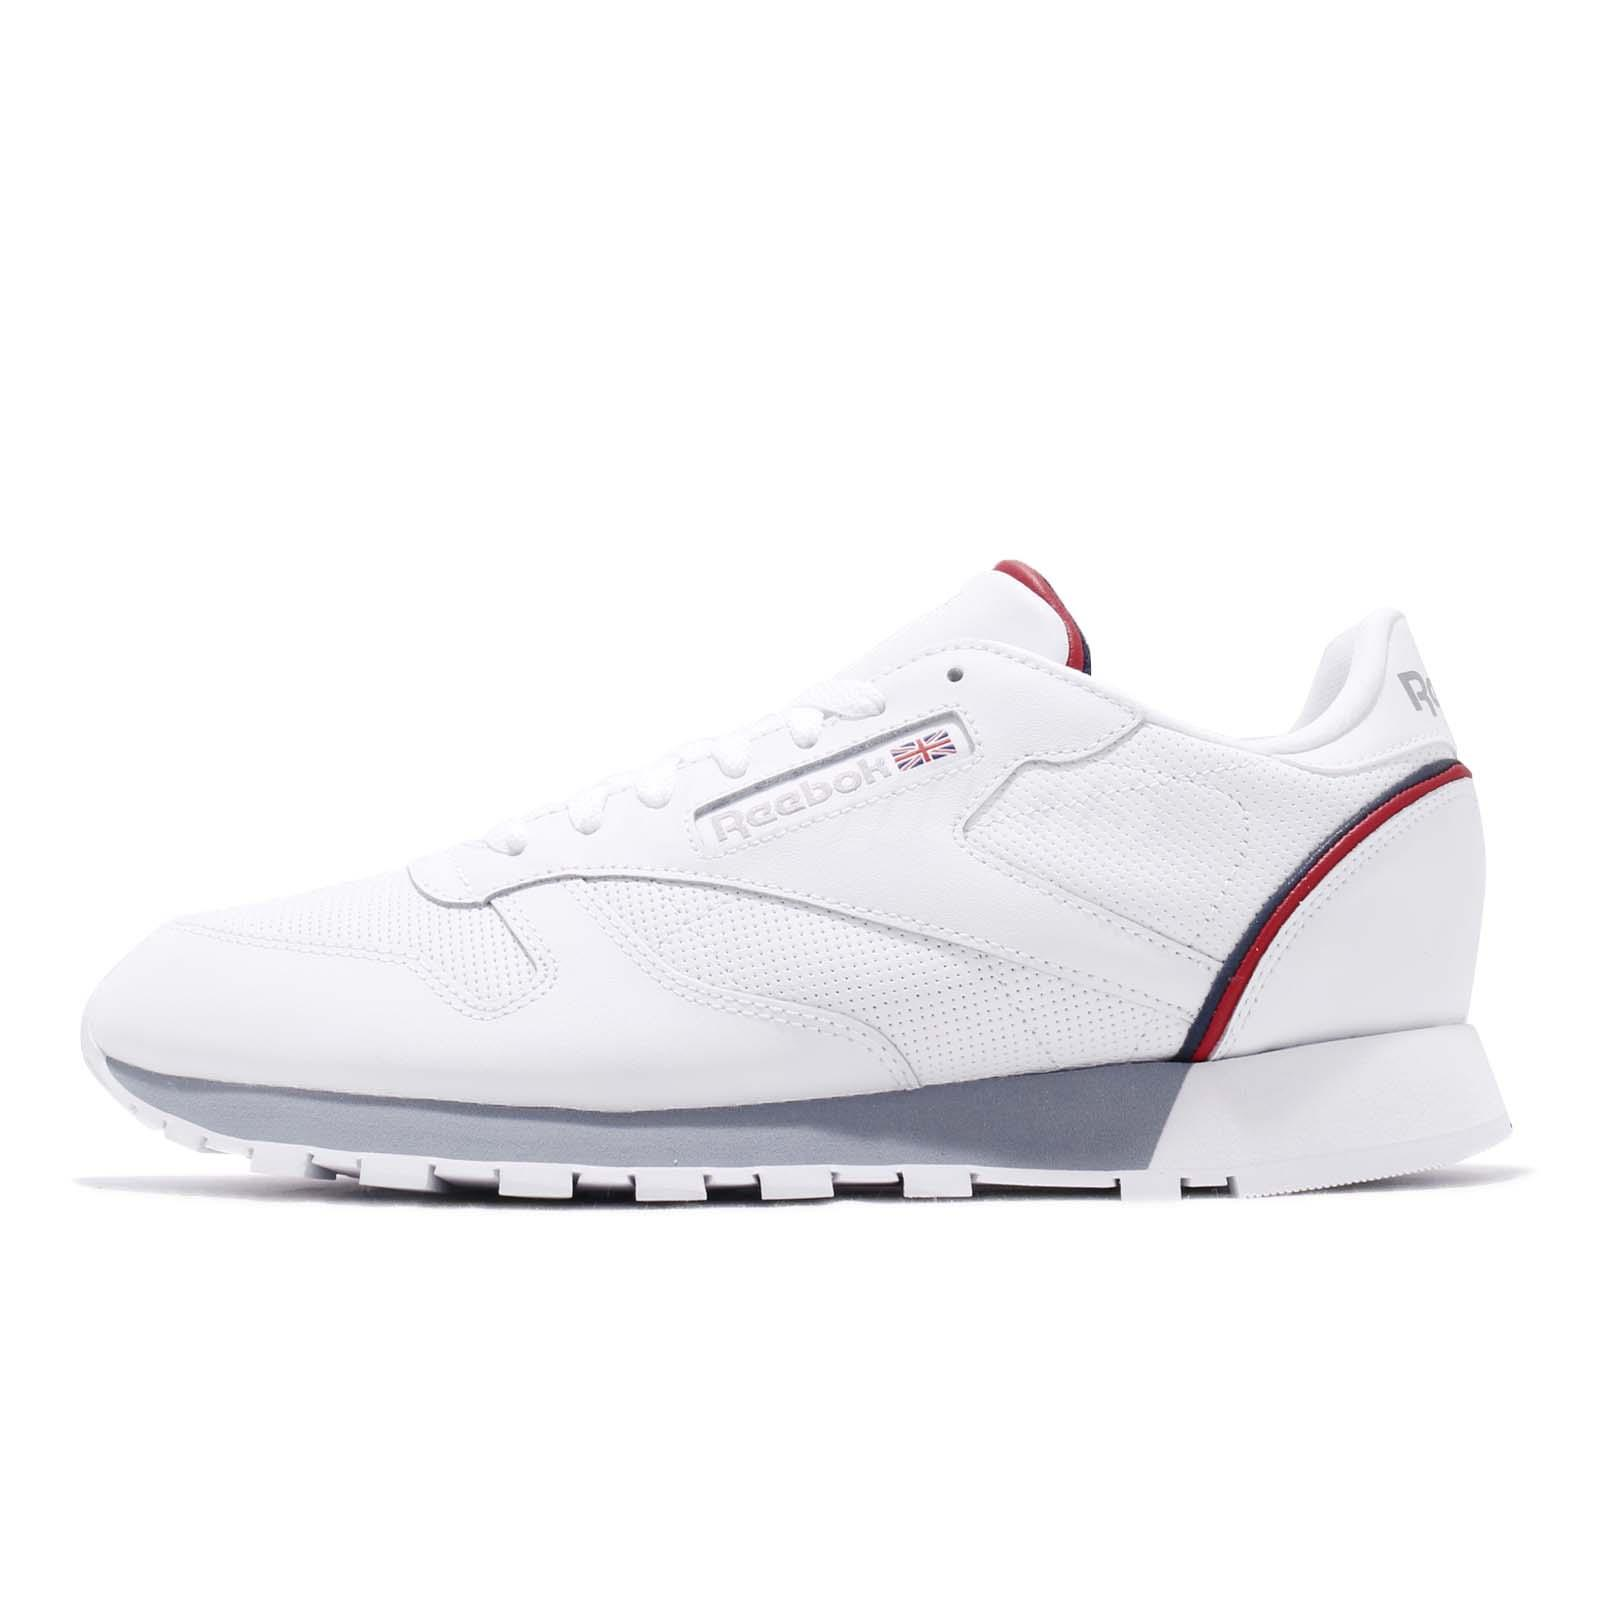 e253c025384 Reebok CL Leather MU White Navy Red Men Classic Casual Shoes Sneakers CN3641